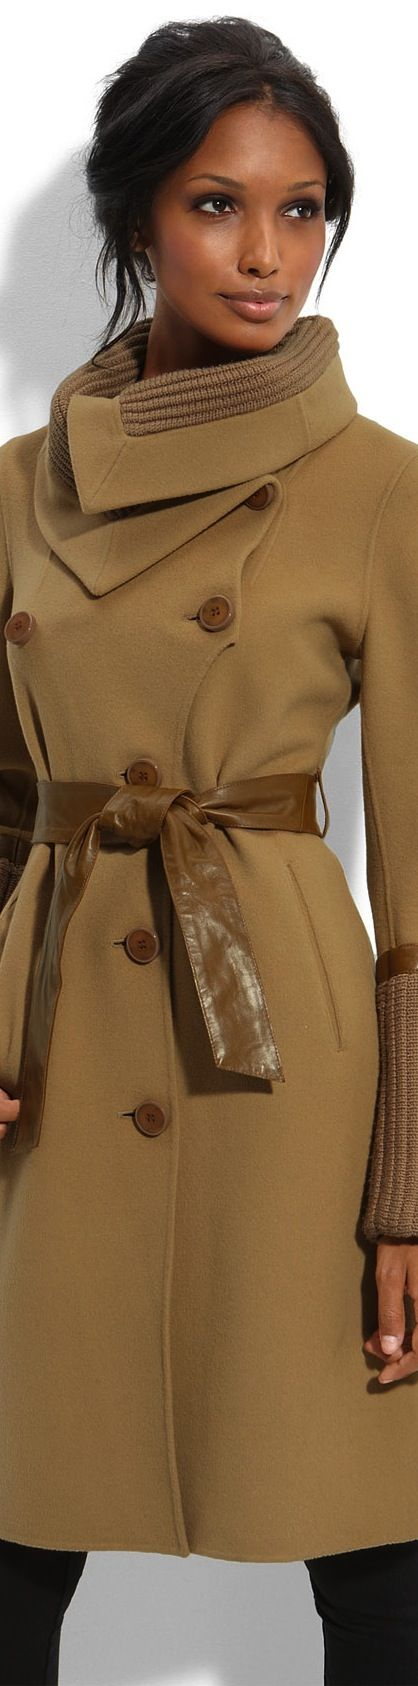 Beautiful Beige Winter Coat, Love The Collar - Fall/Winter Fashion